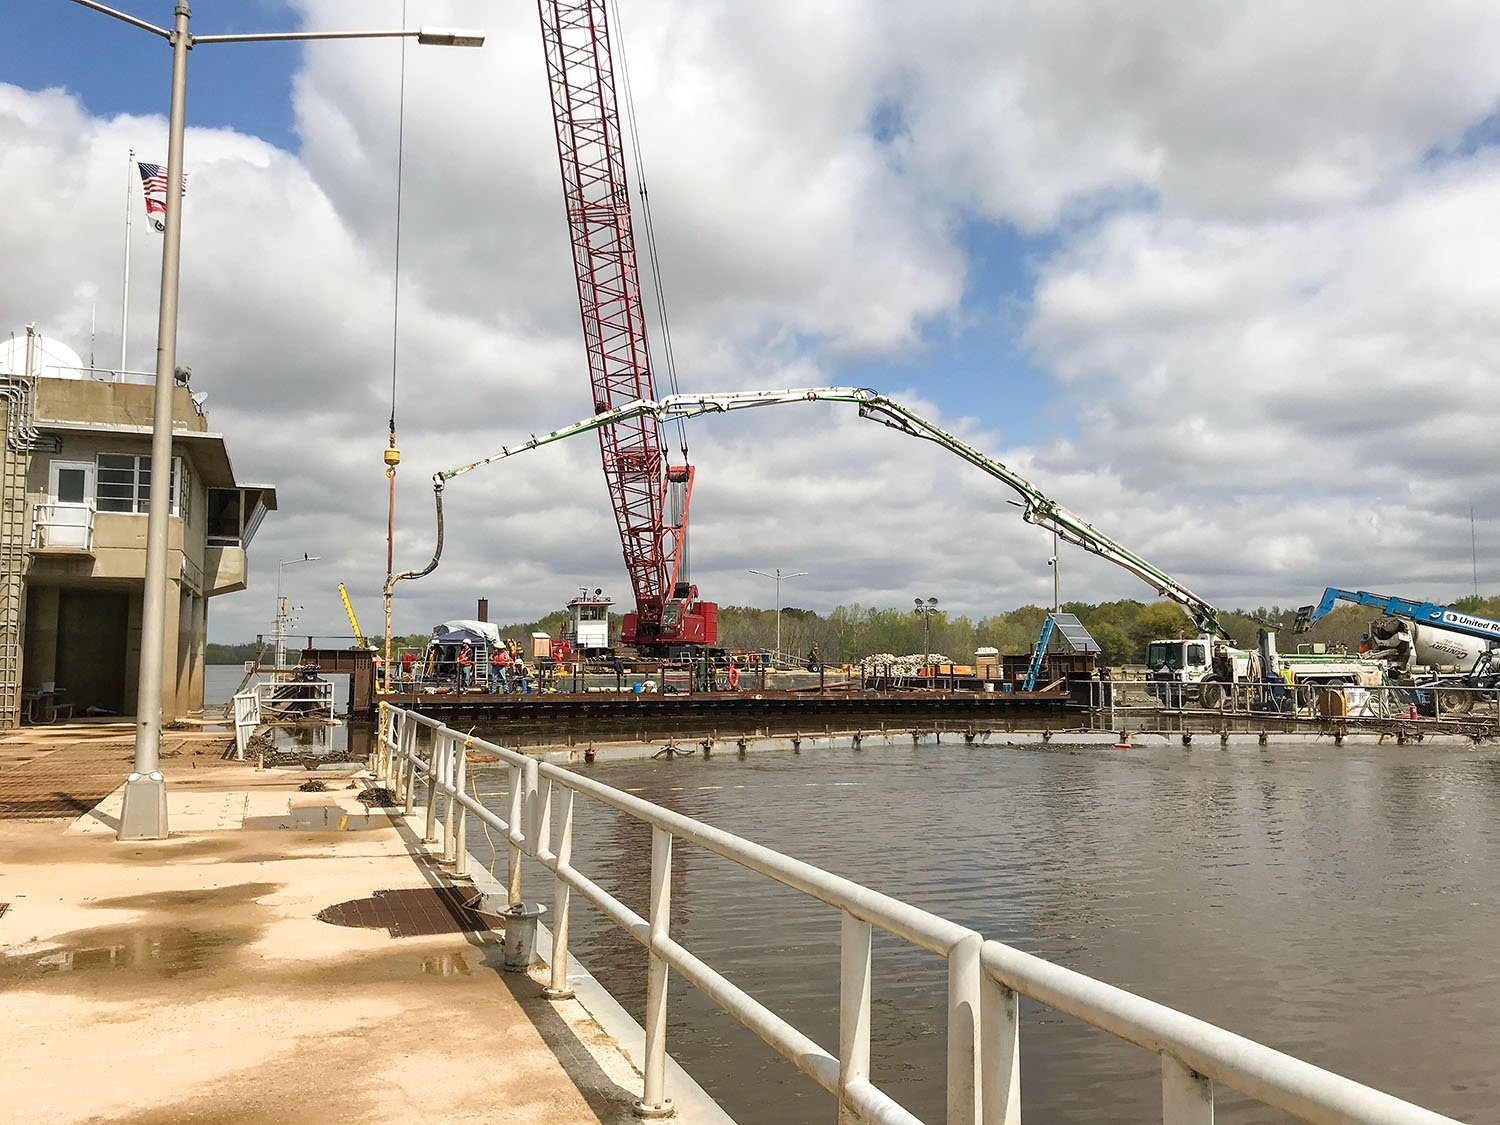 Larger-than-expected voids meant Massman had to bring in an additional floating crane and use tremie concrete and pressure grouting. (Photo courtesy of Massman Construction)